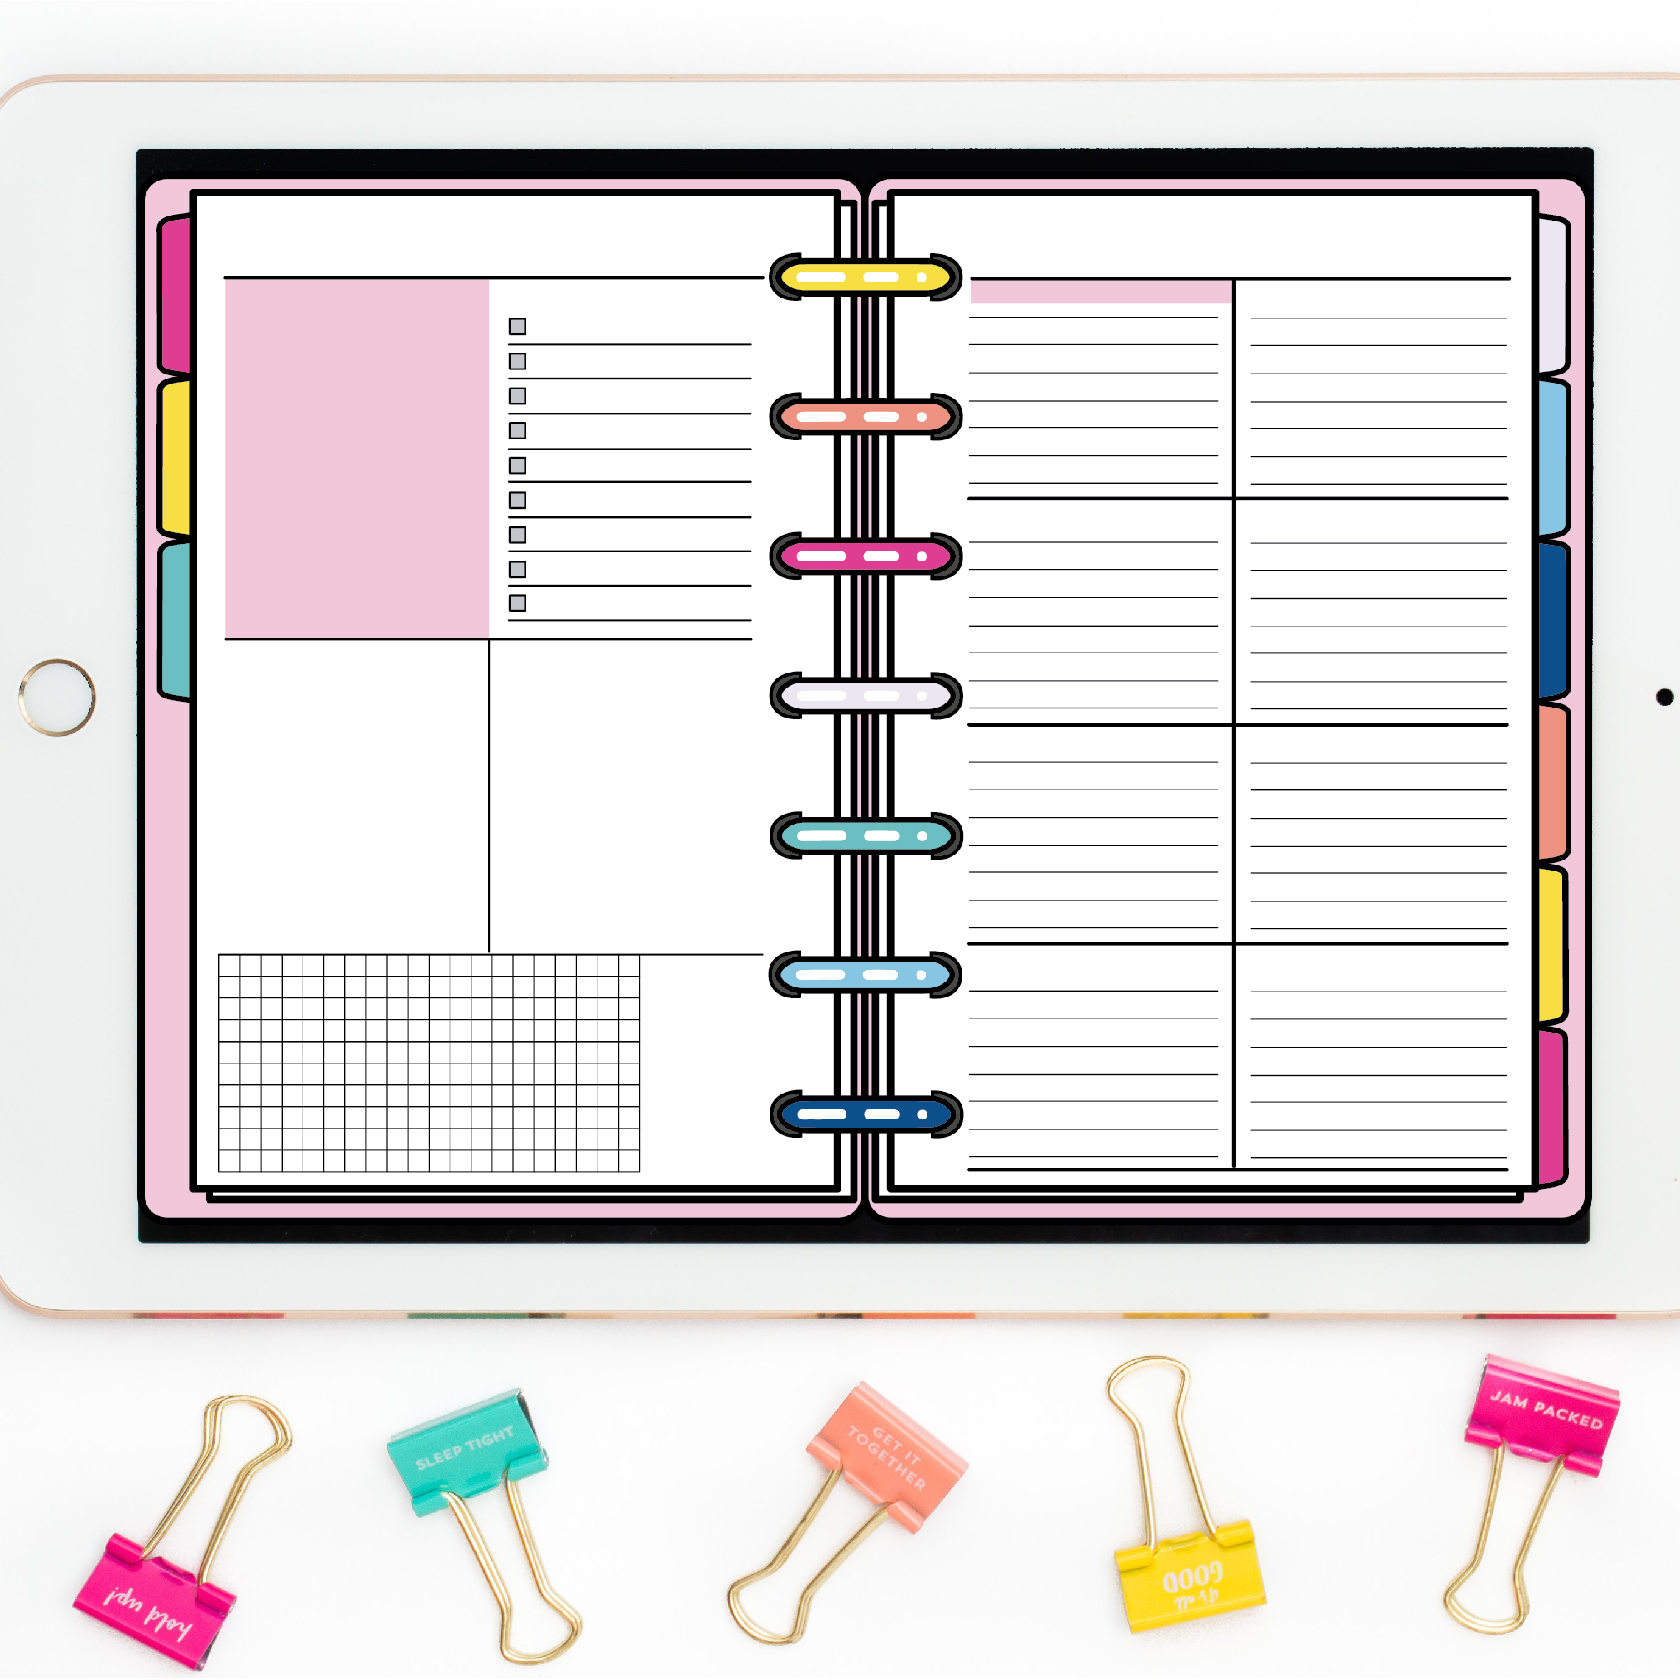 paper planner or digital planner pros and cons